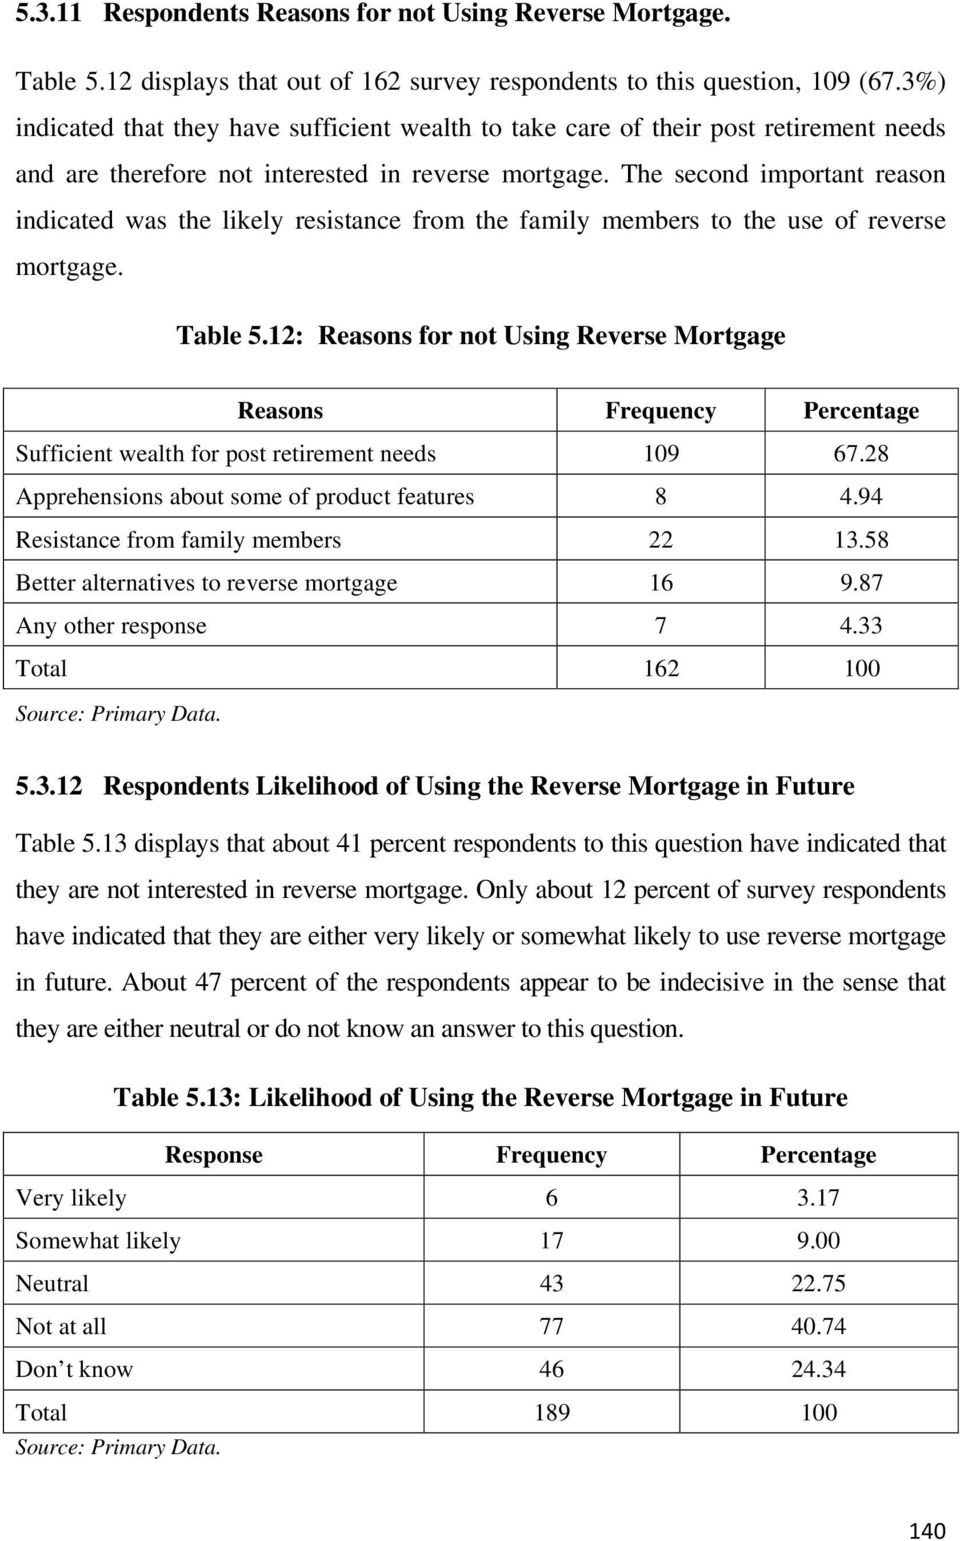 The second important reason indicated was the likely resistance from the family members to the use of reverse mortgage. Table 5.